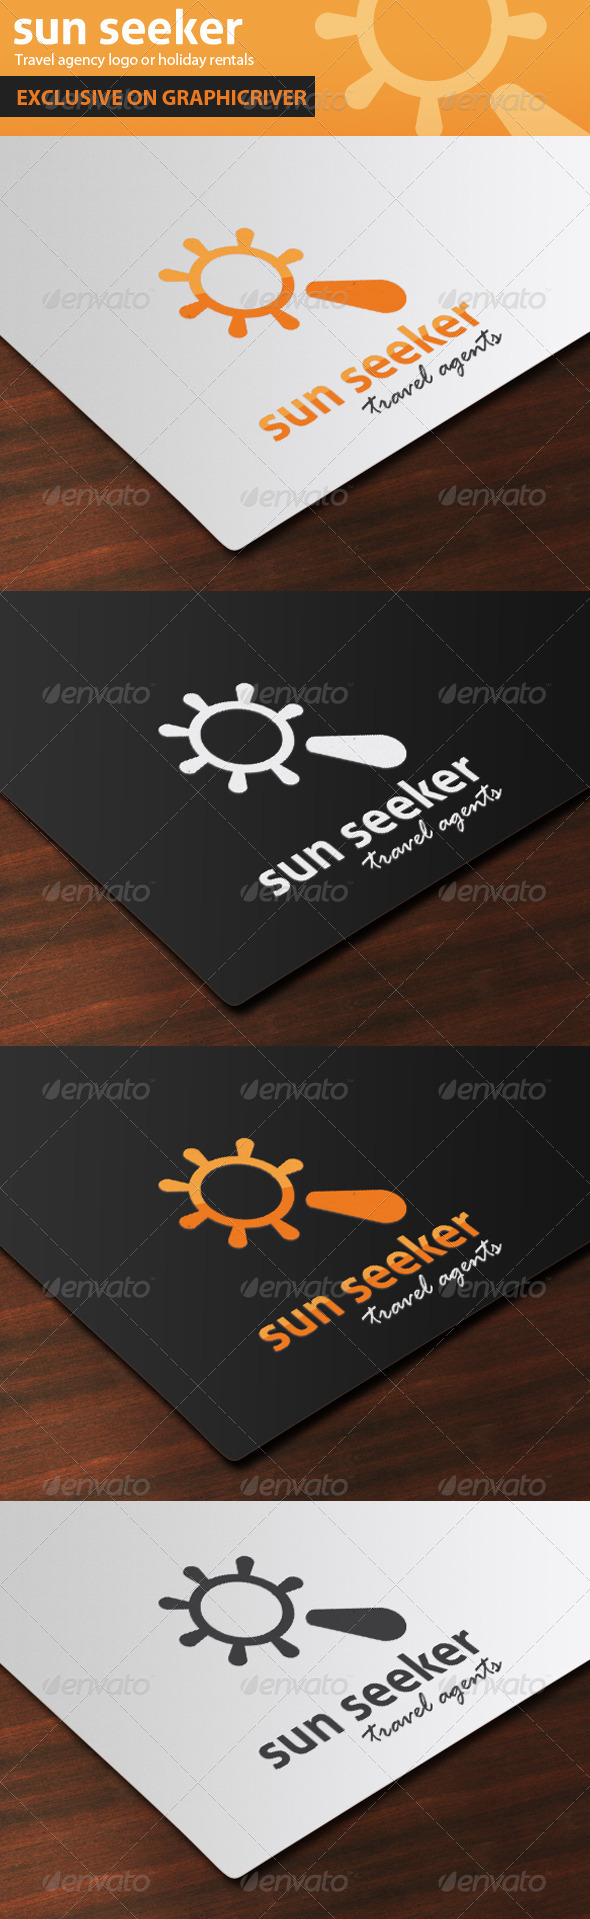 Sun Seeker Travel Agent Logo